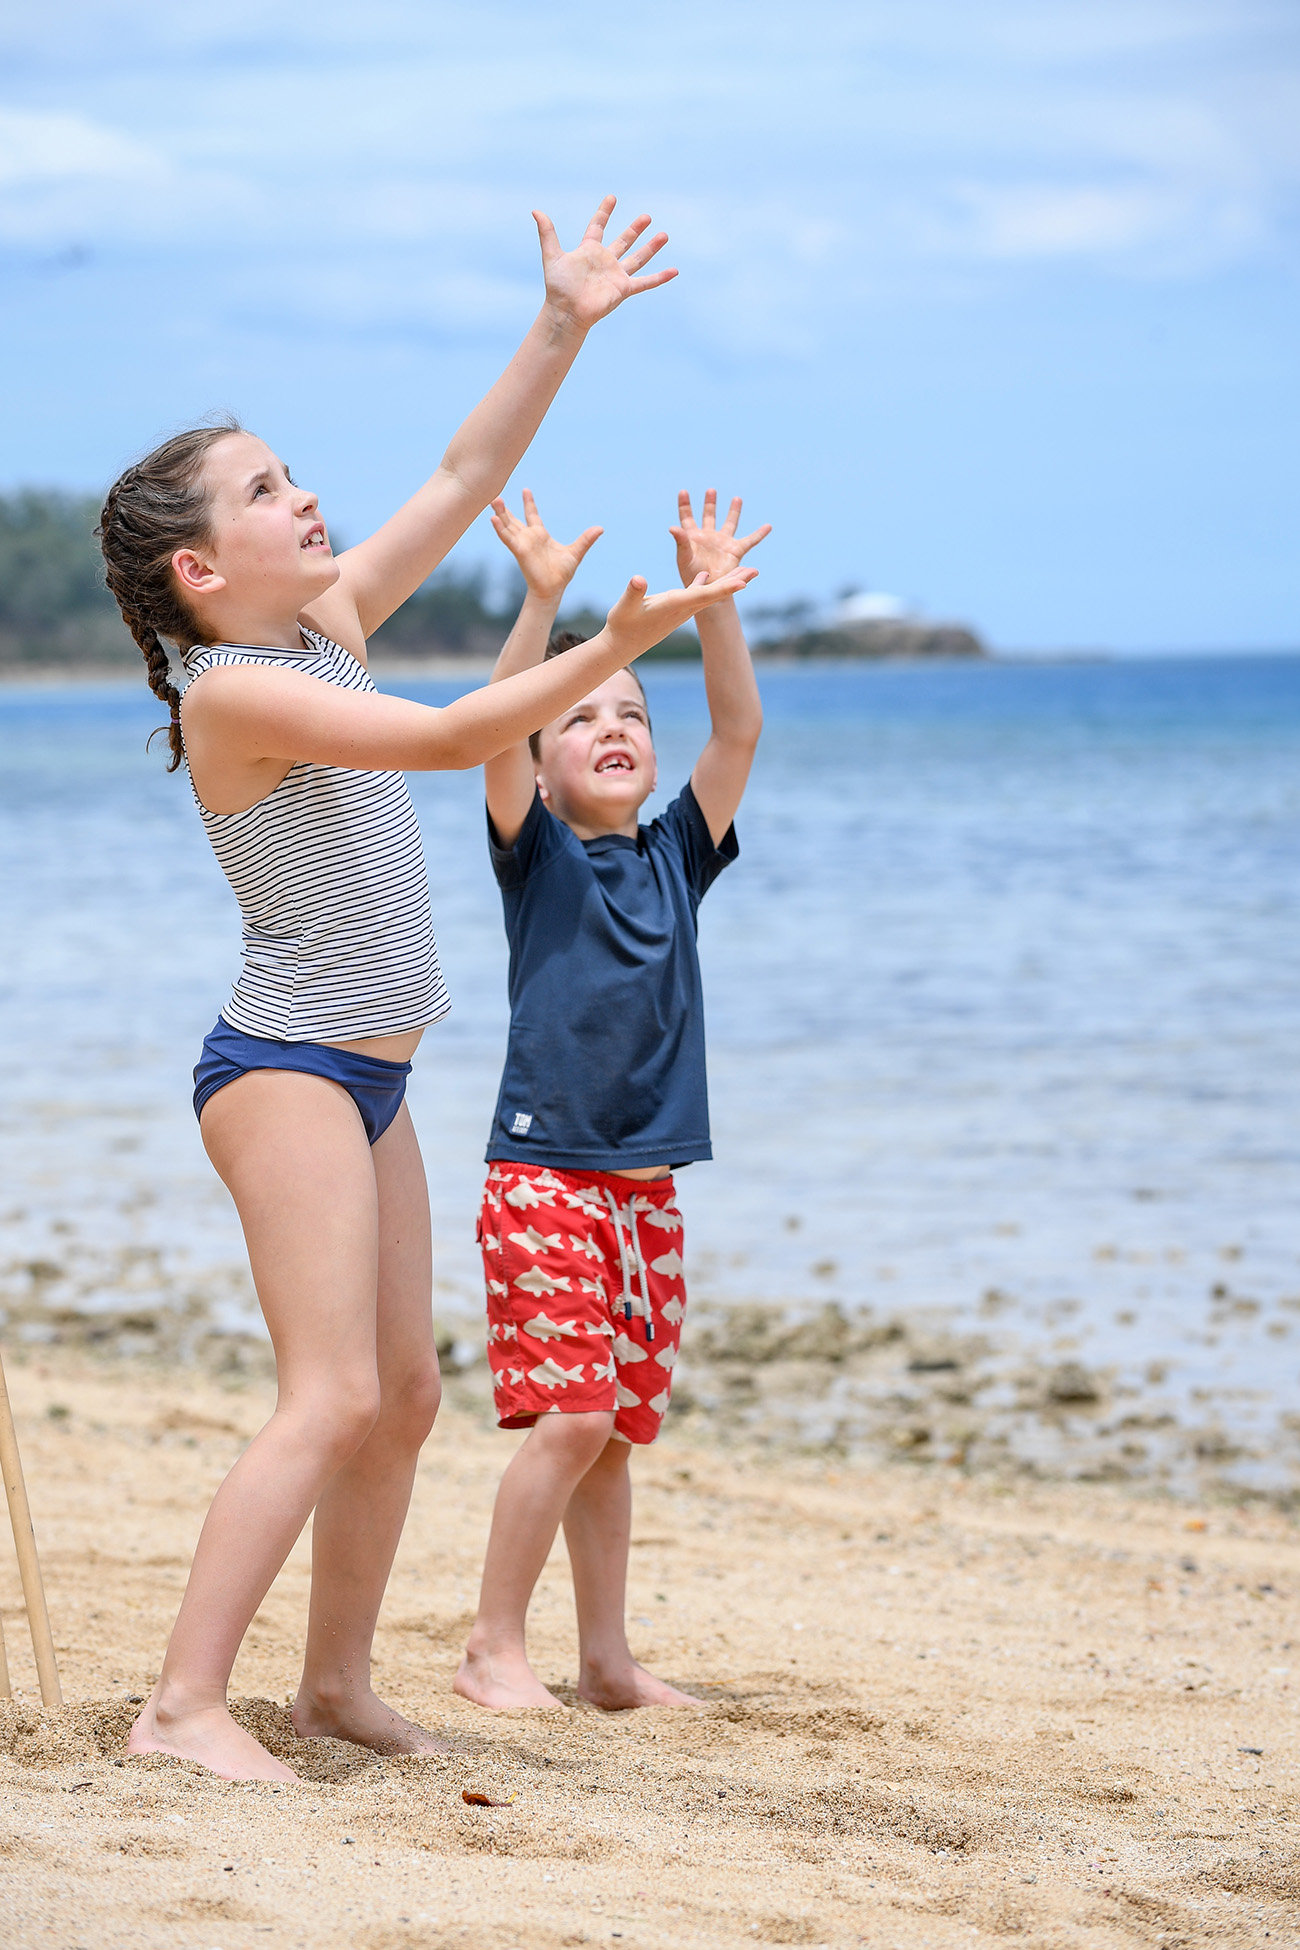 The cute babies reach for the cricket ball in the air while playing beach cricket